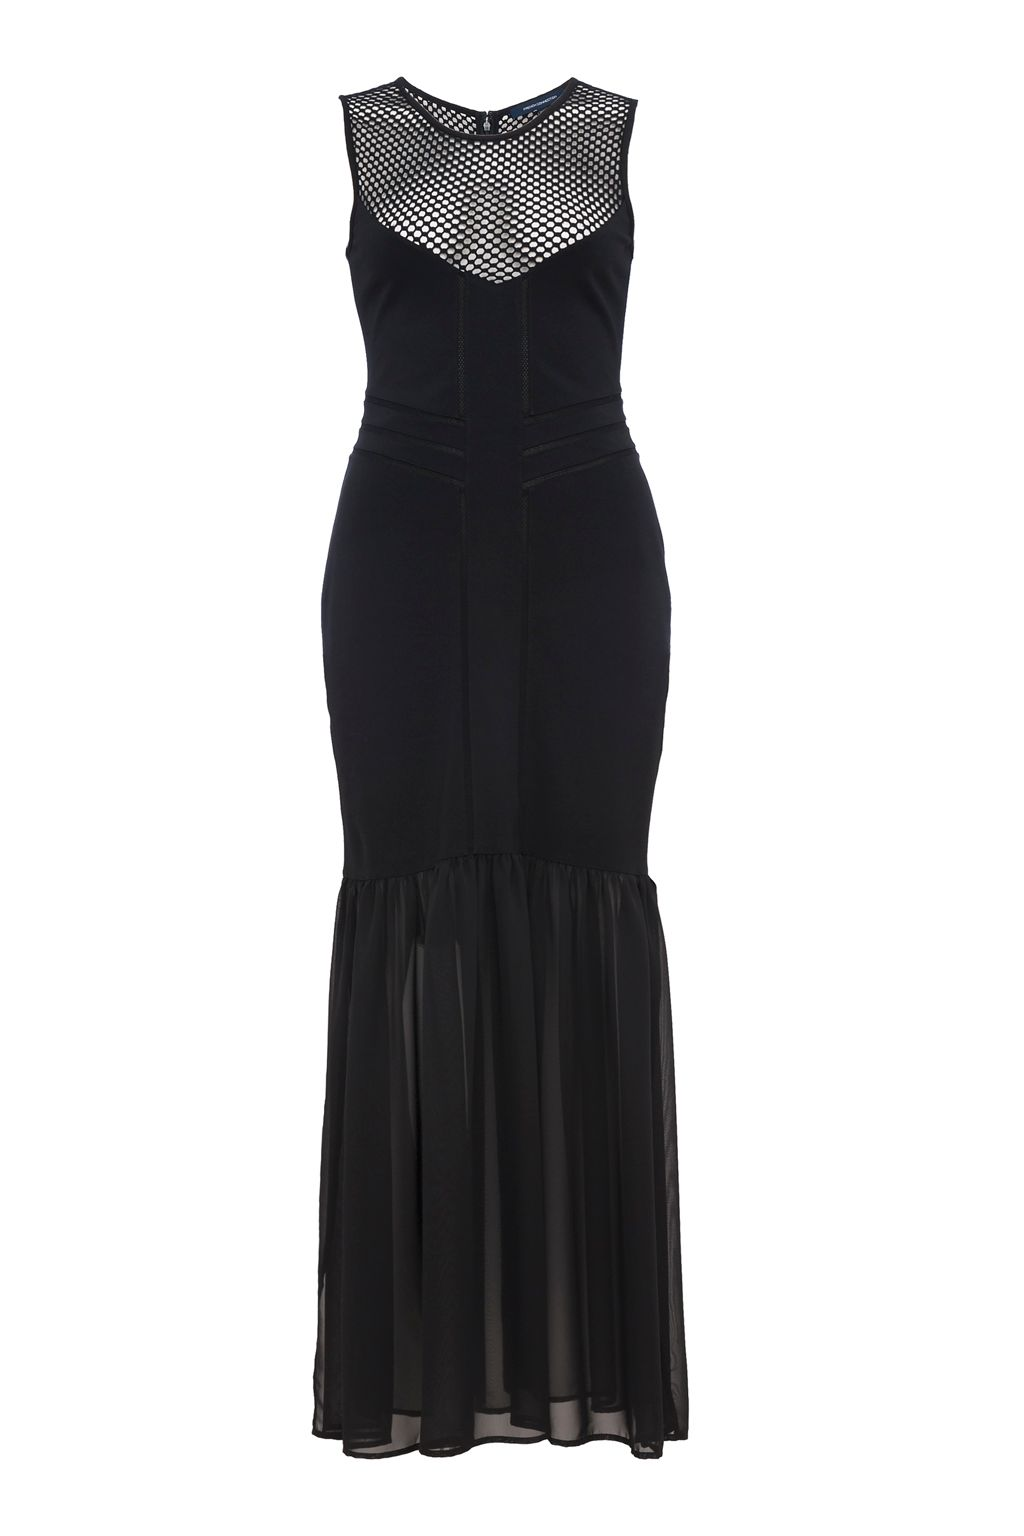 French Connection Chantilly Beau Jersey Mesh Maxi Dress, Black